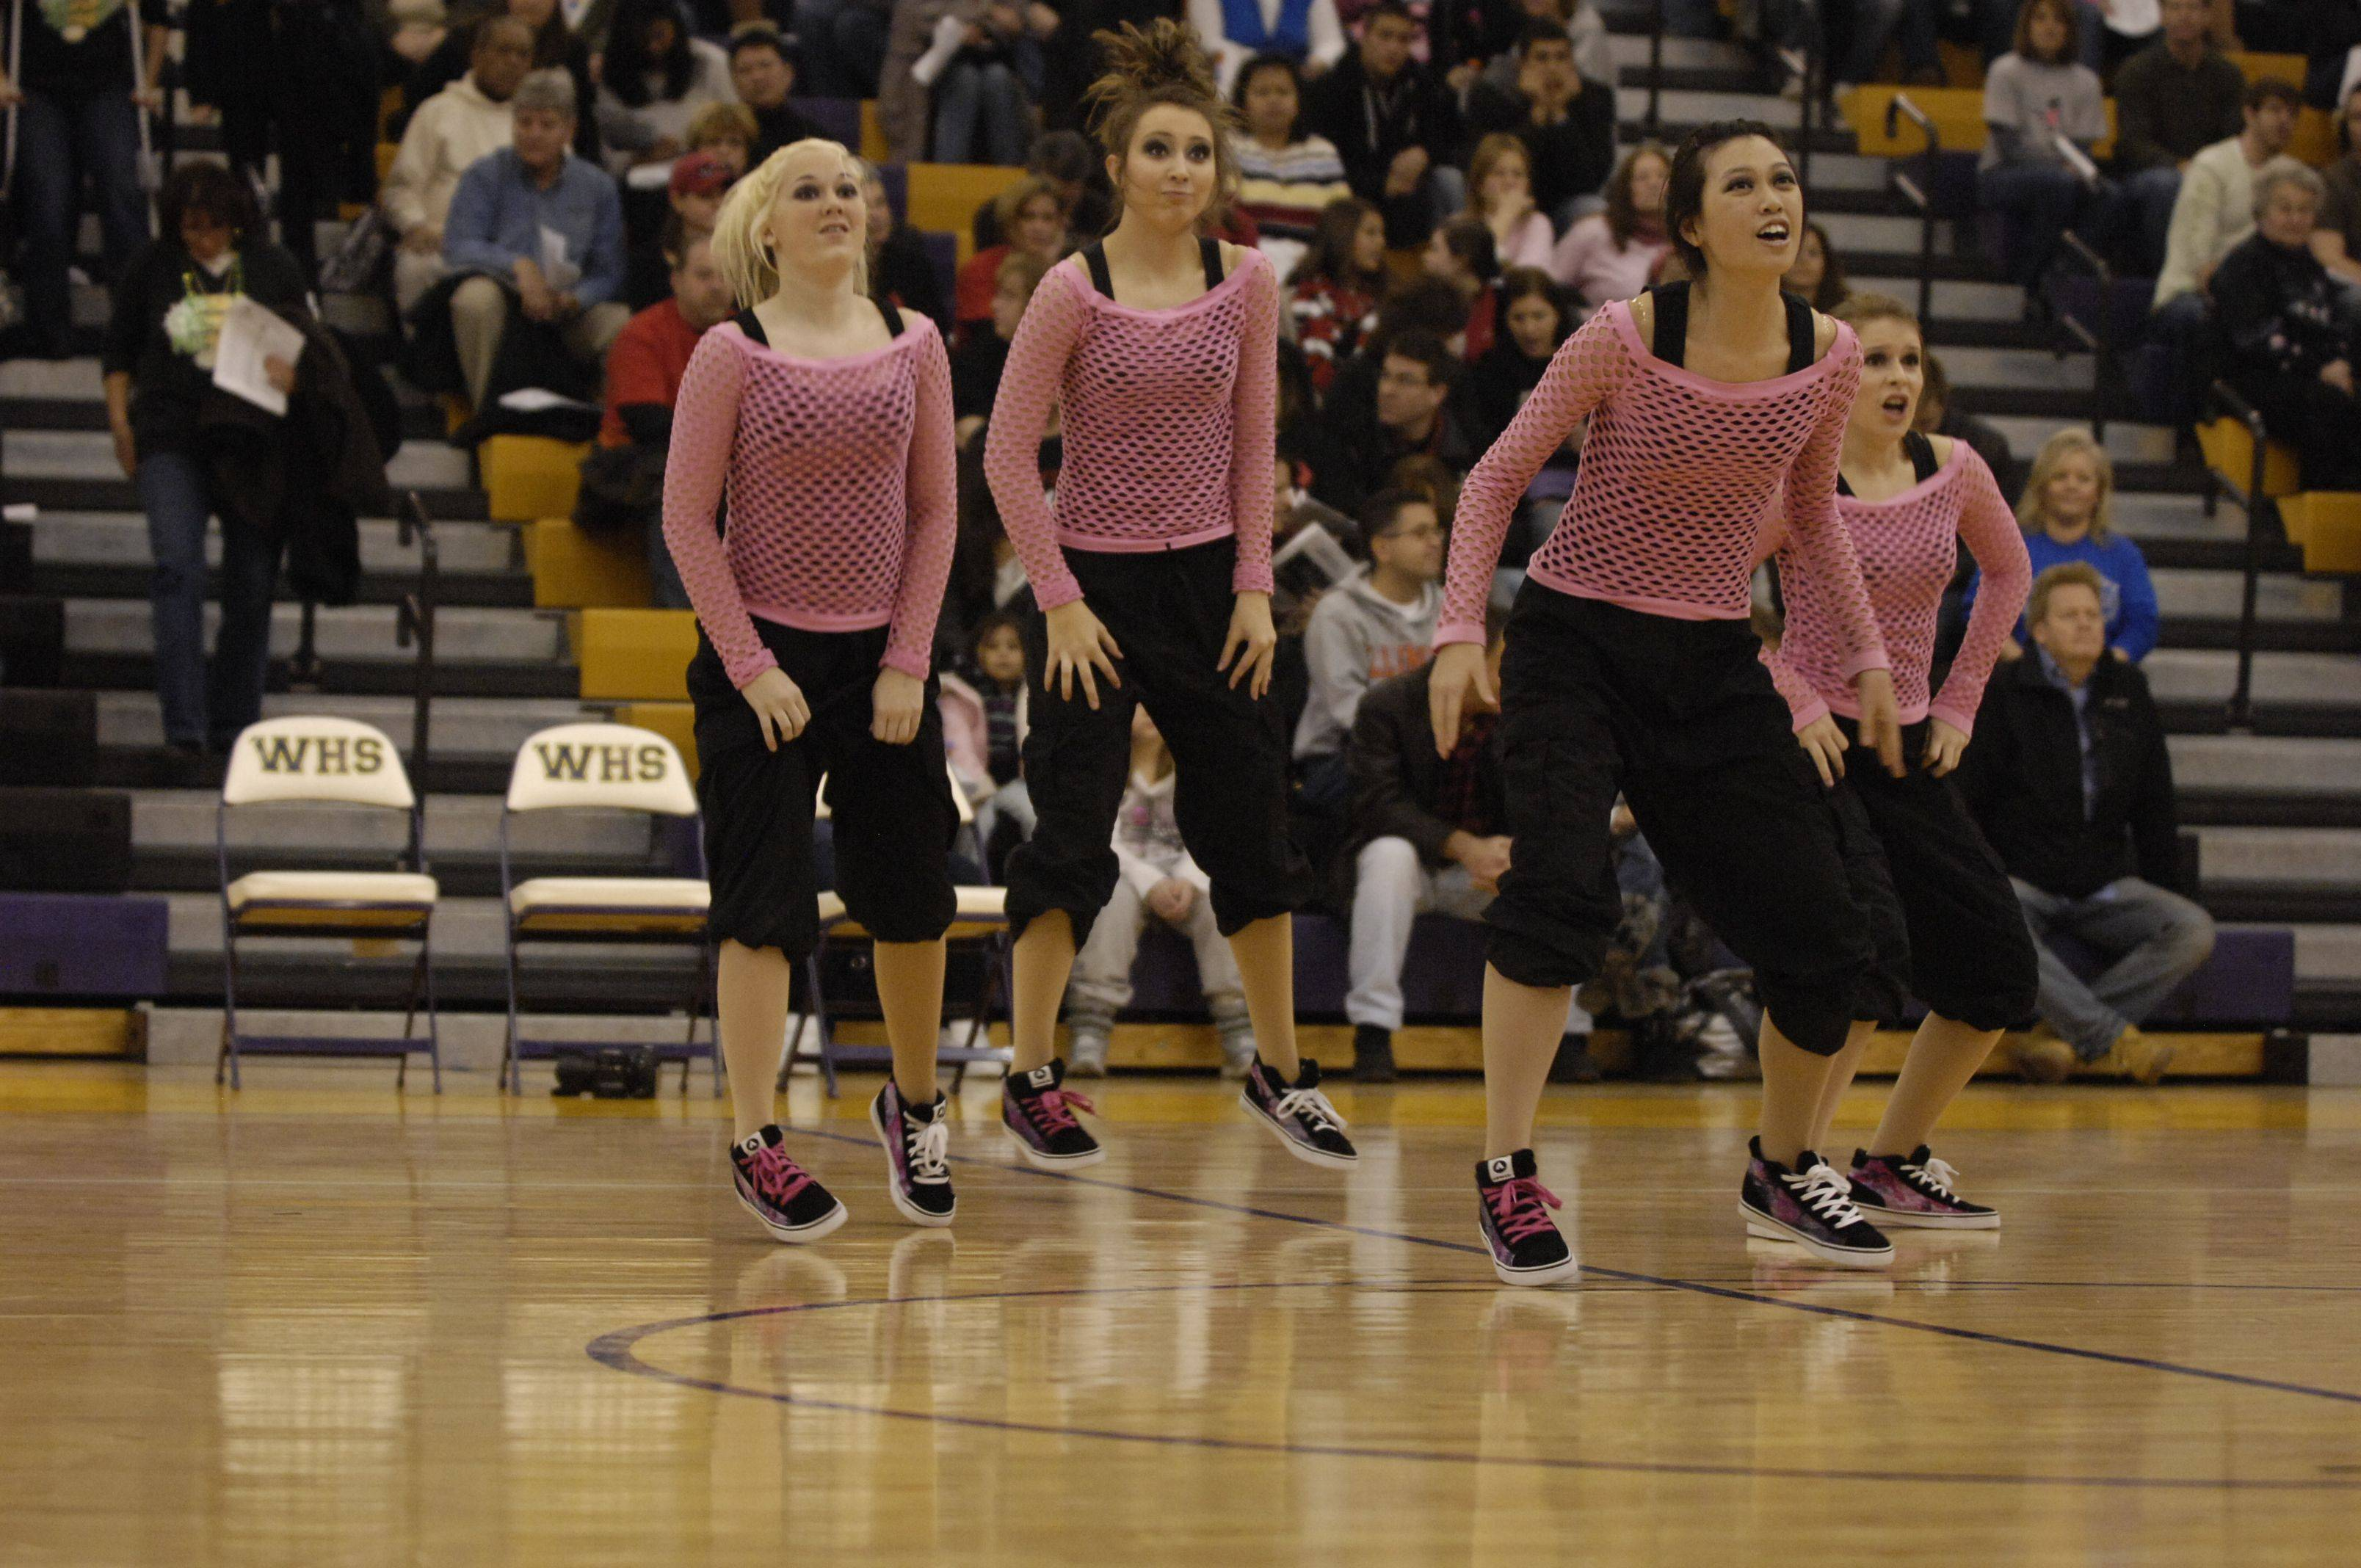 Warren Township High School performs in the JV Hip Hop division during the Team Dance Illinois Wauconda Invitational competition at Wauconda High School.